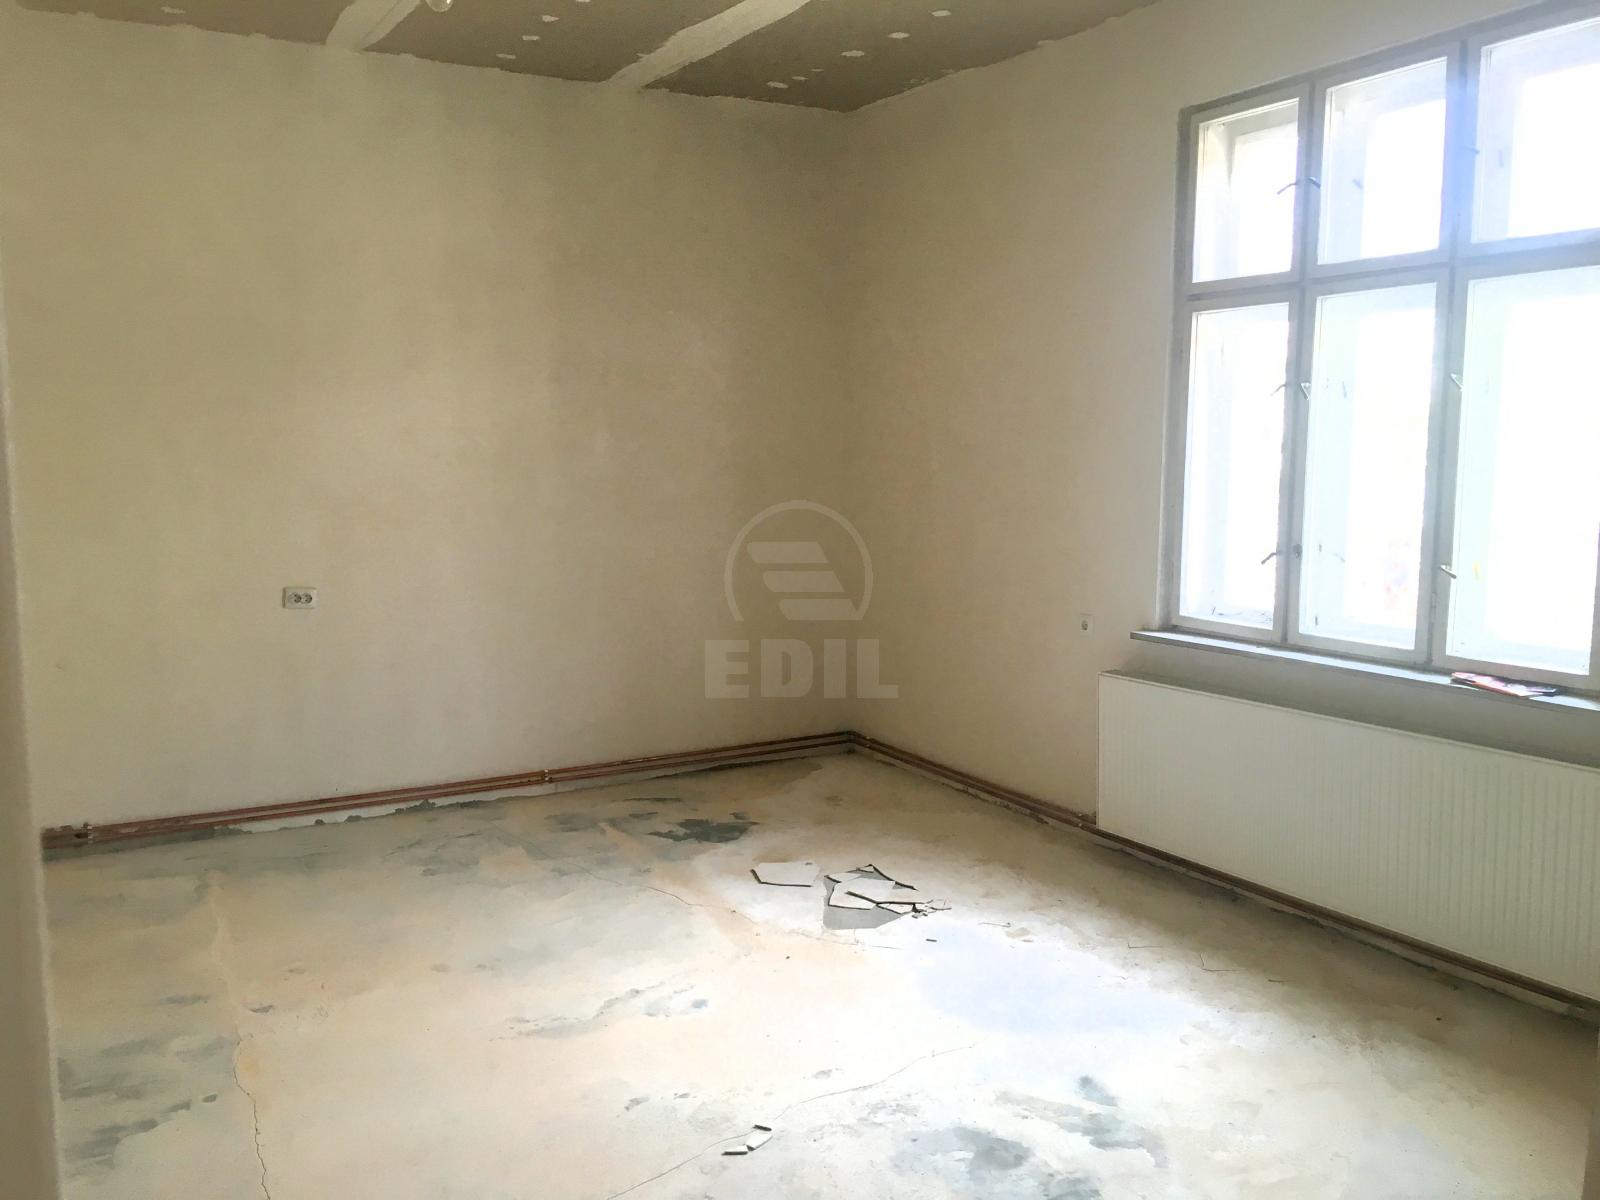 Apartment for sale 2 rooms, APCJ273754-3